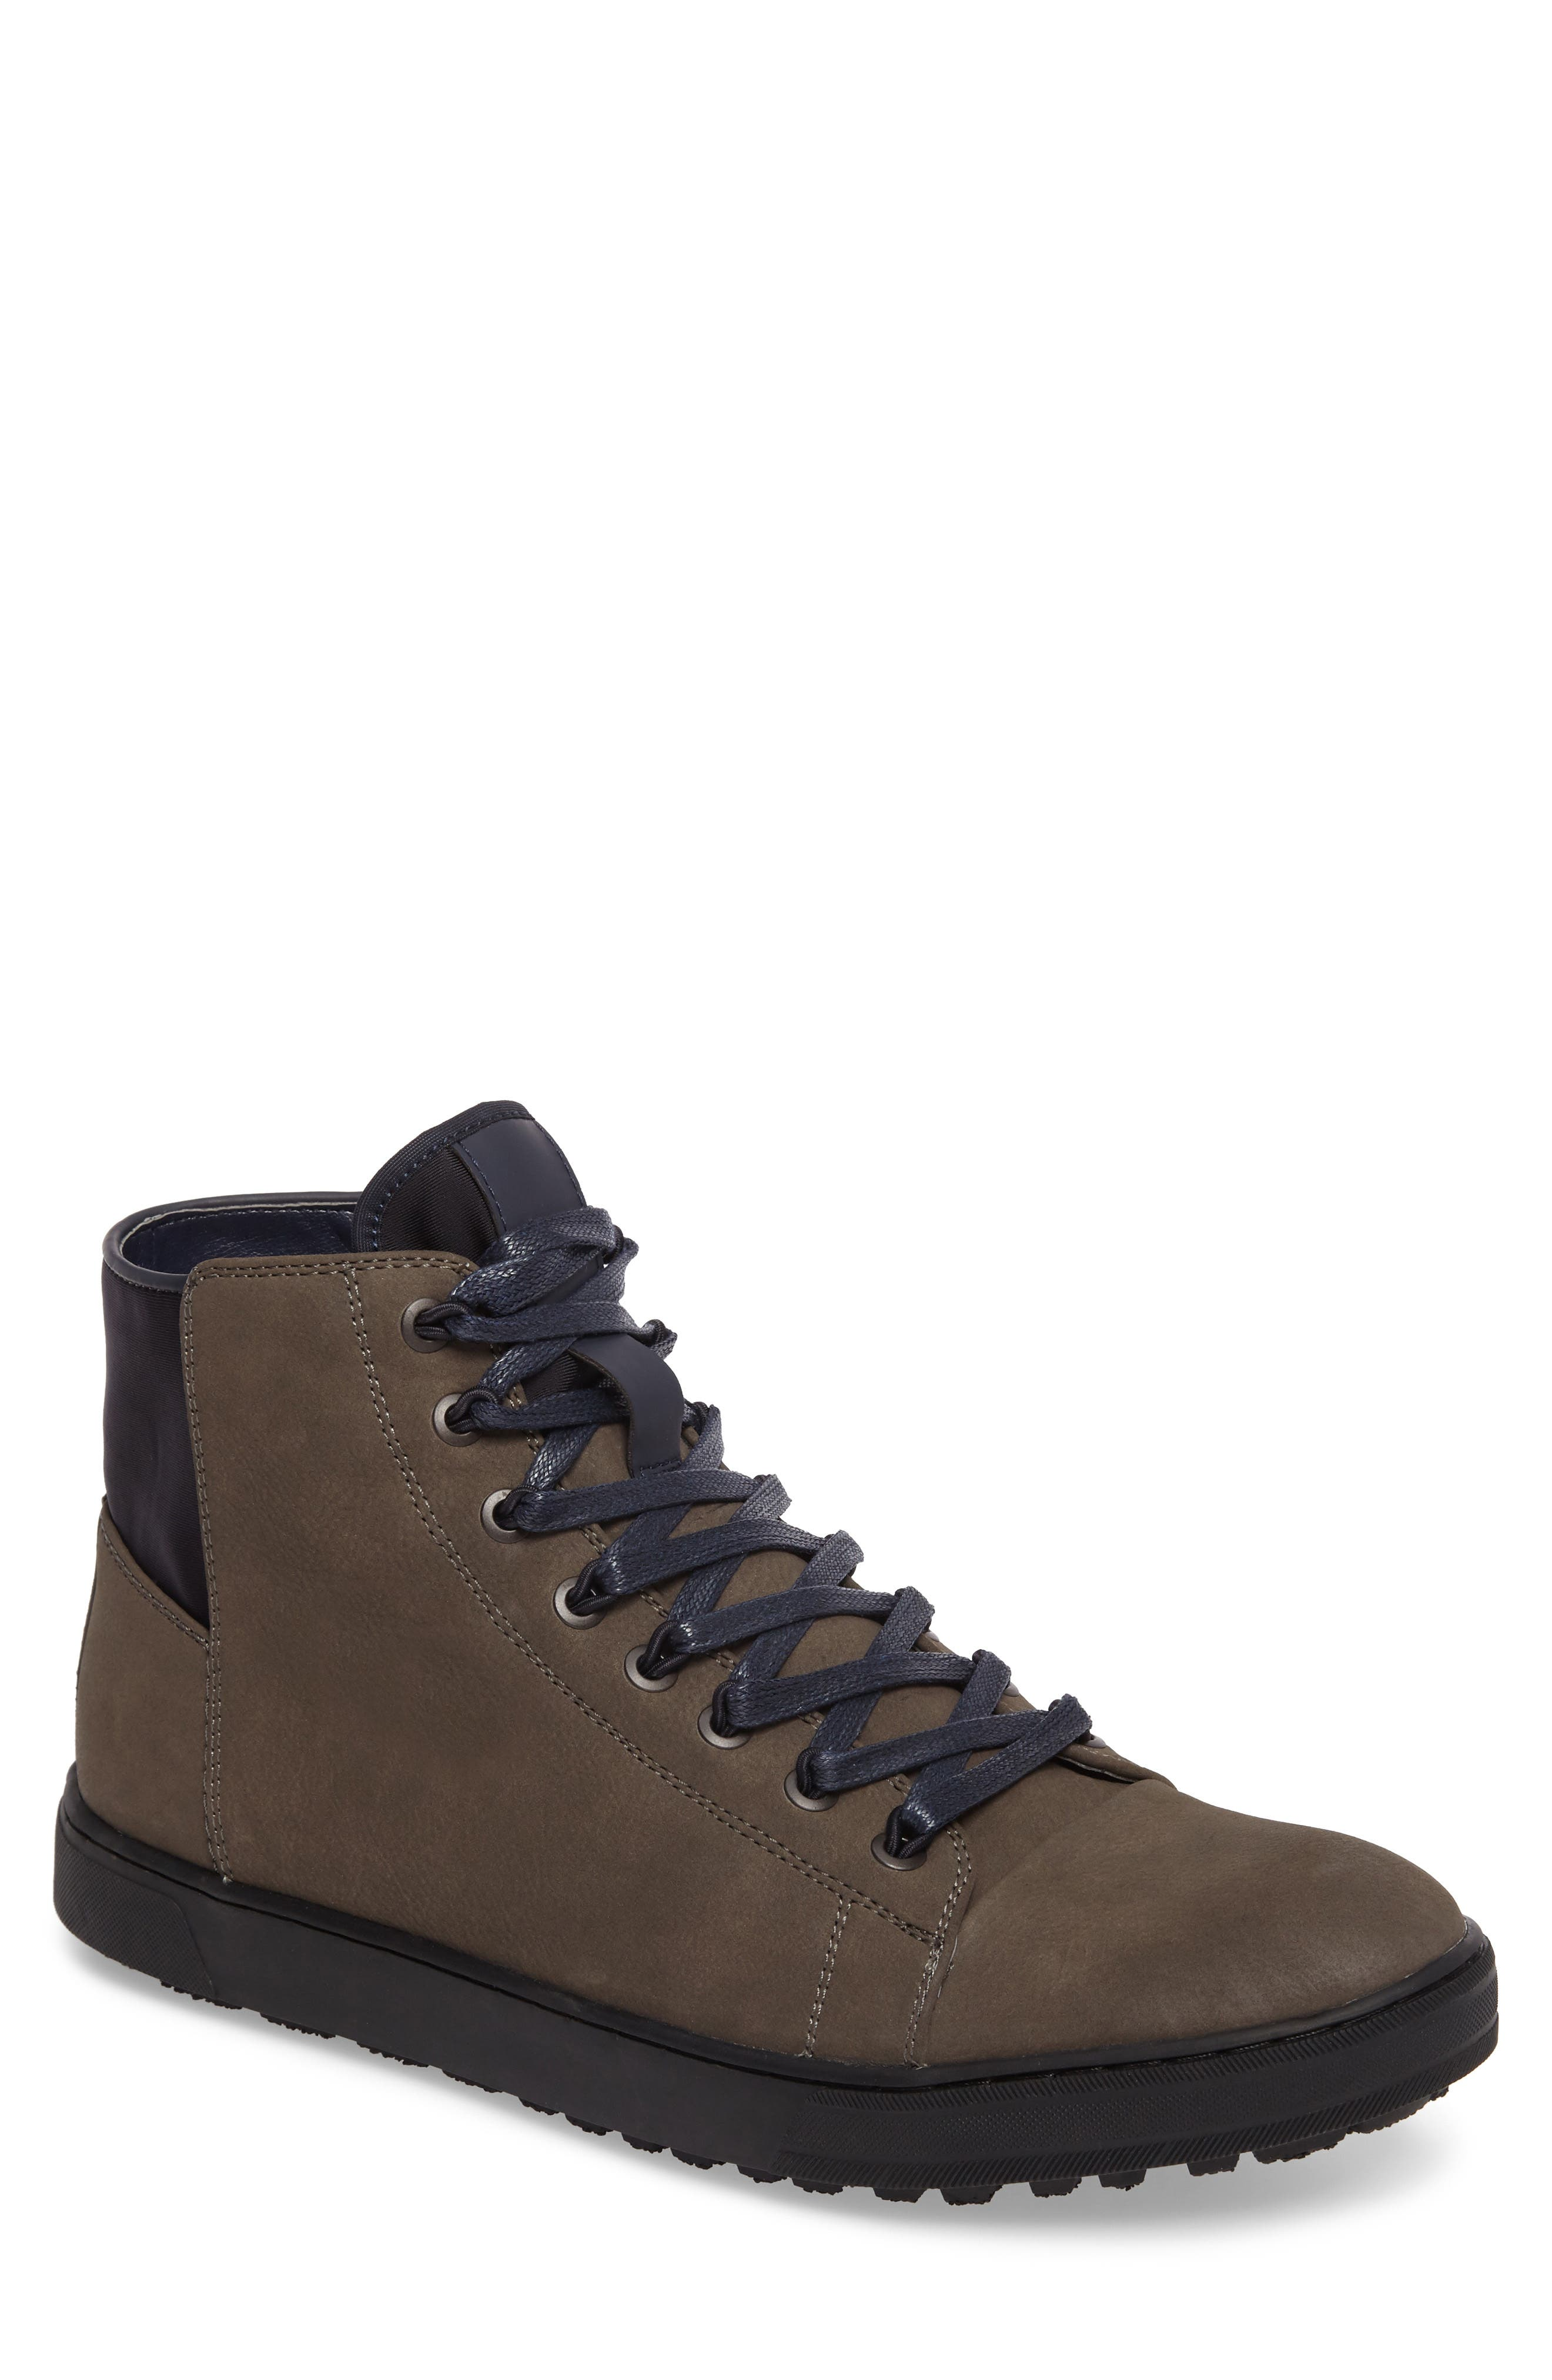 Alternate Image 1 Selected - Kenneth Cole Reaction High-Top Sneaker (Men)